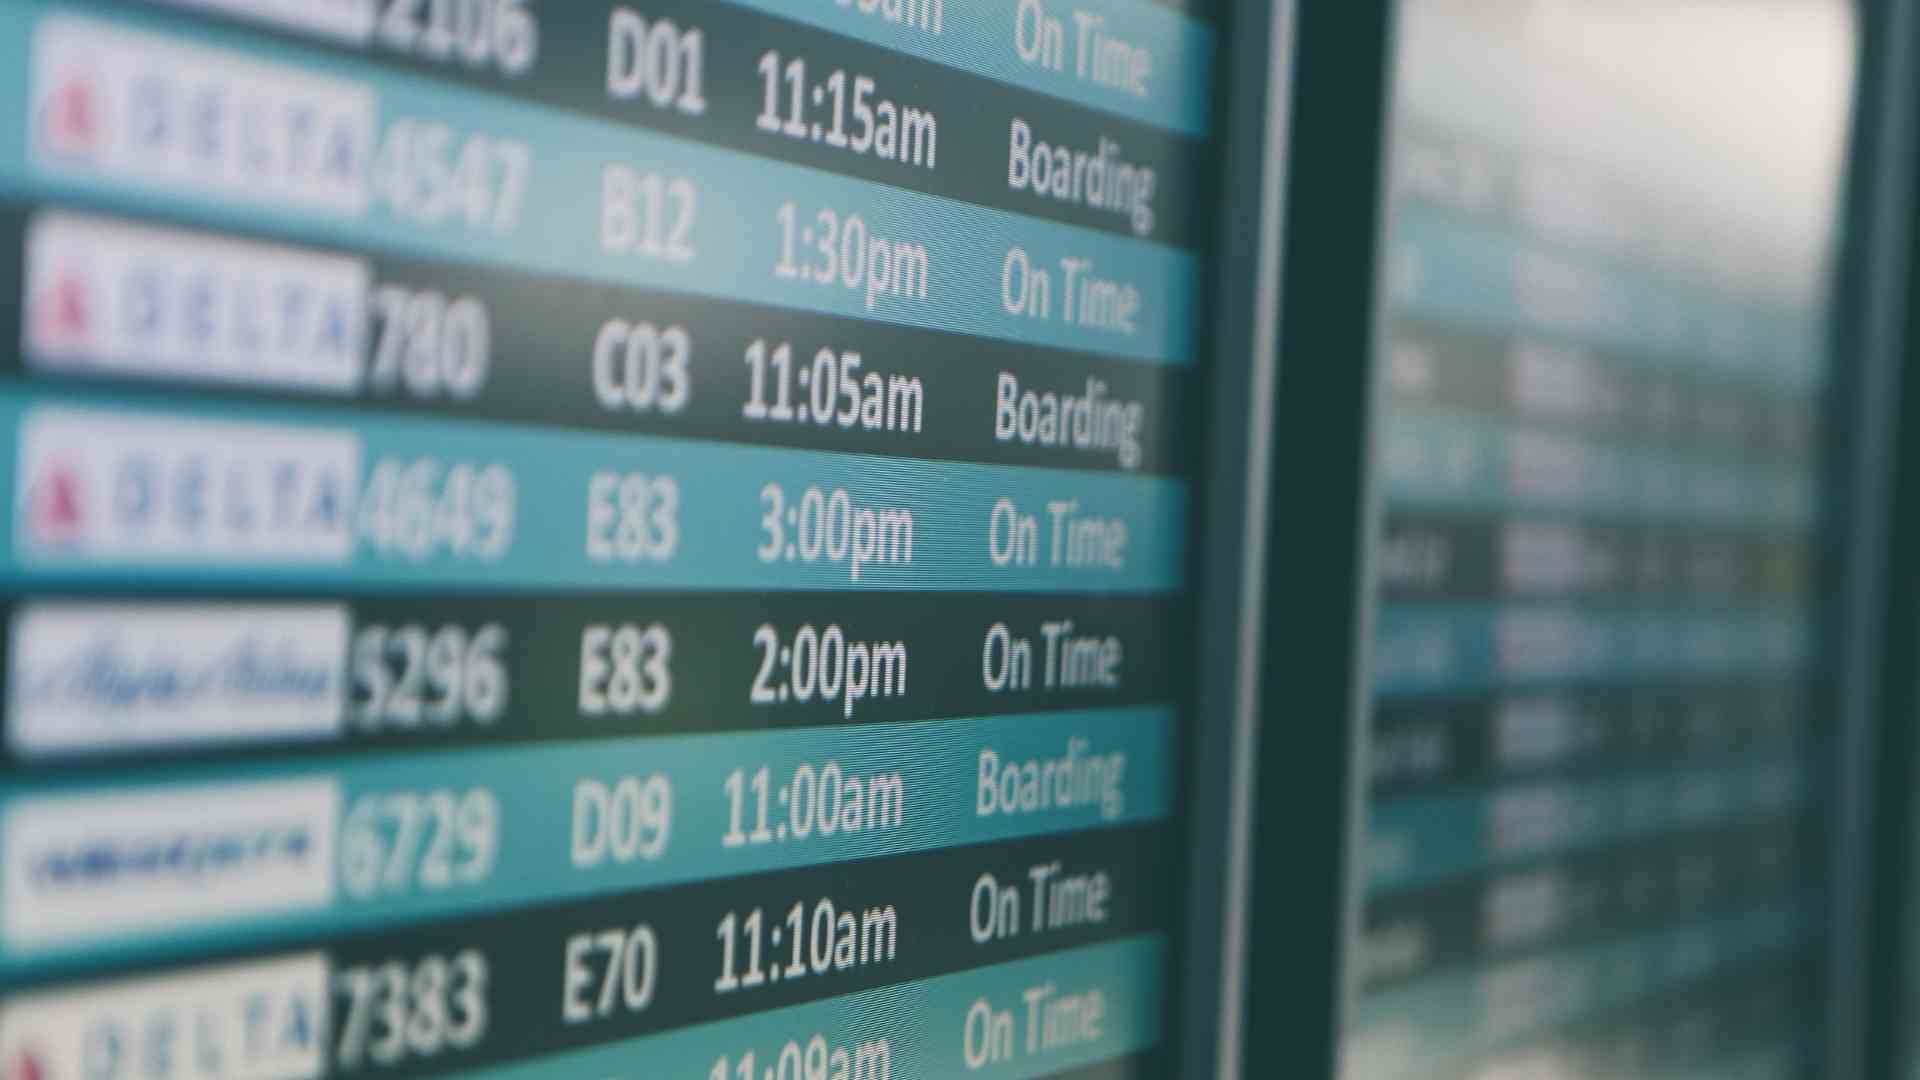 What Are Connecting Flights?